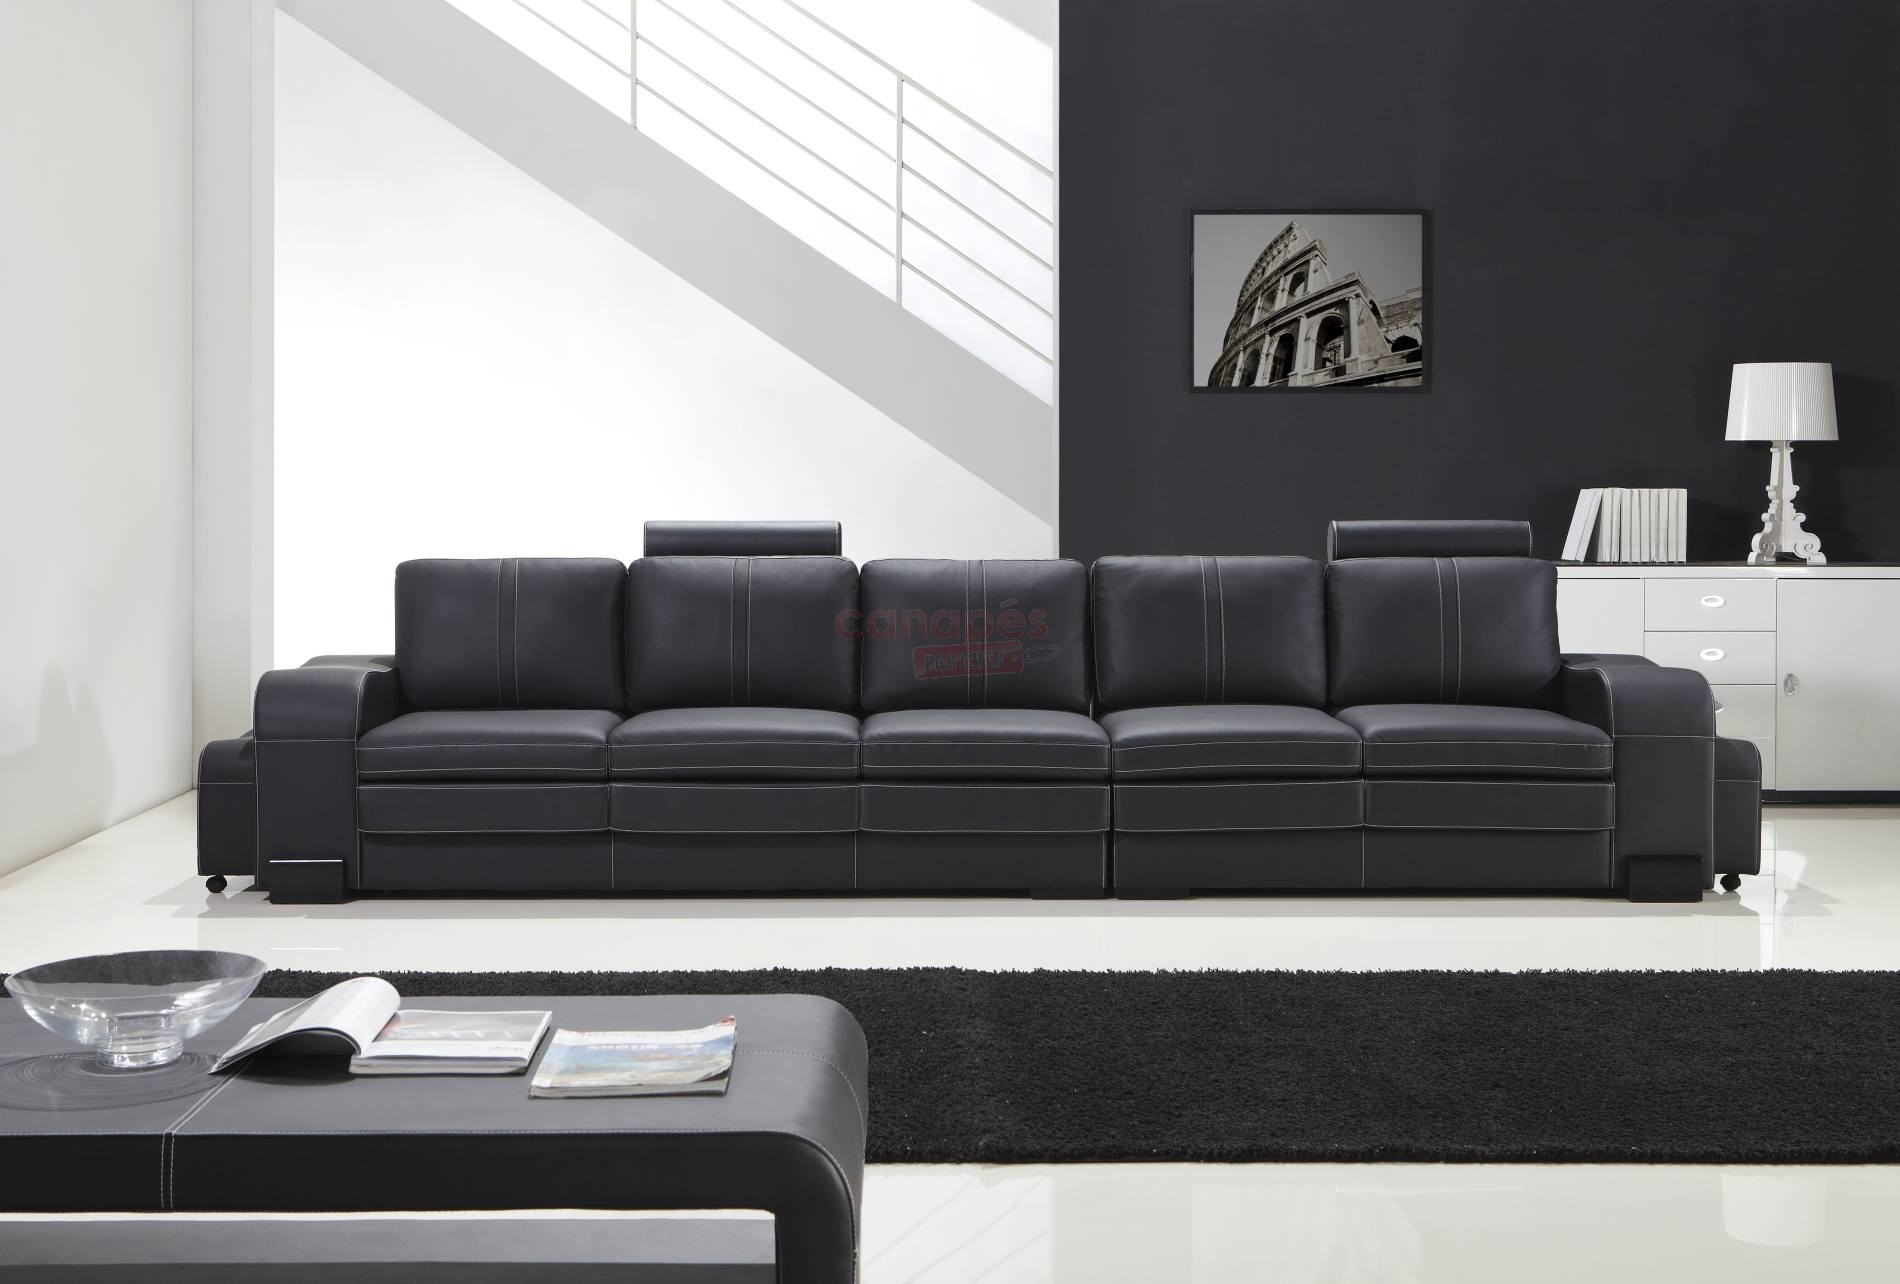 Canap 5 places convertible pas cher royal sofa id e - Meuble dos de canape ...